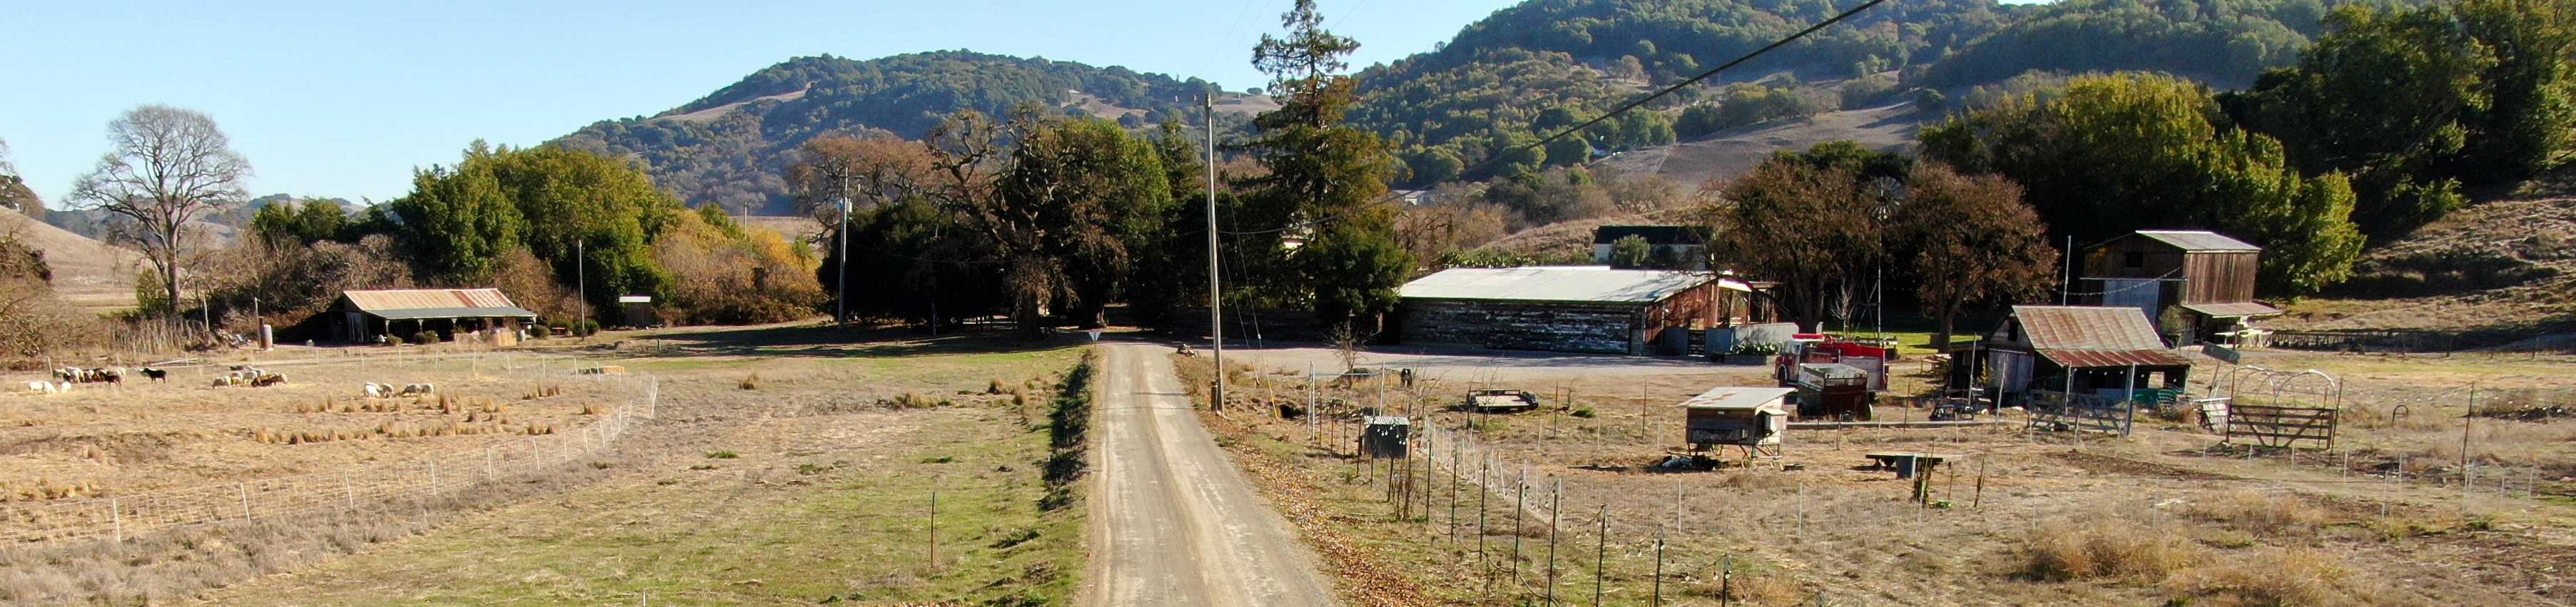 Road crossing a ranch with trees and mountains on the background a few animals to the left and a few human-made structures to the right like a hut a barn and fences. This is just a cool picture of where I live and is not really relevant for the article.